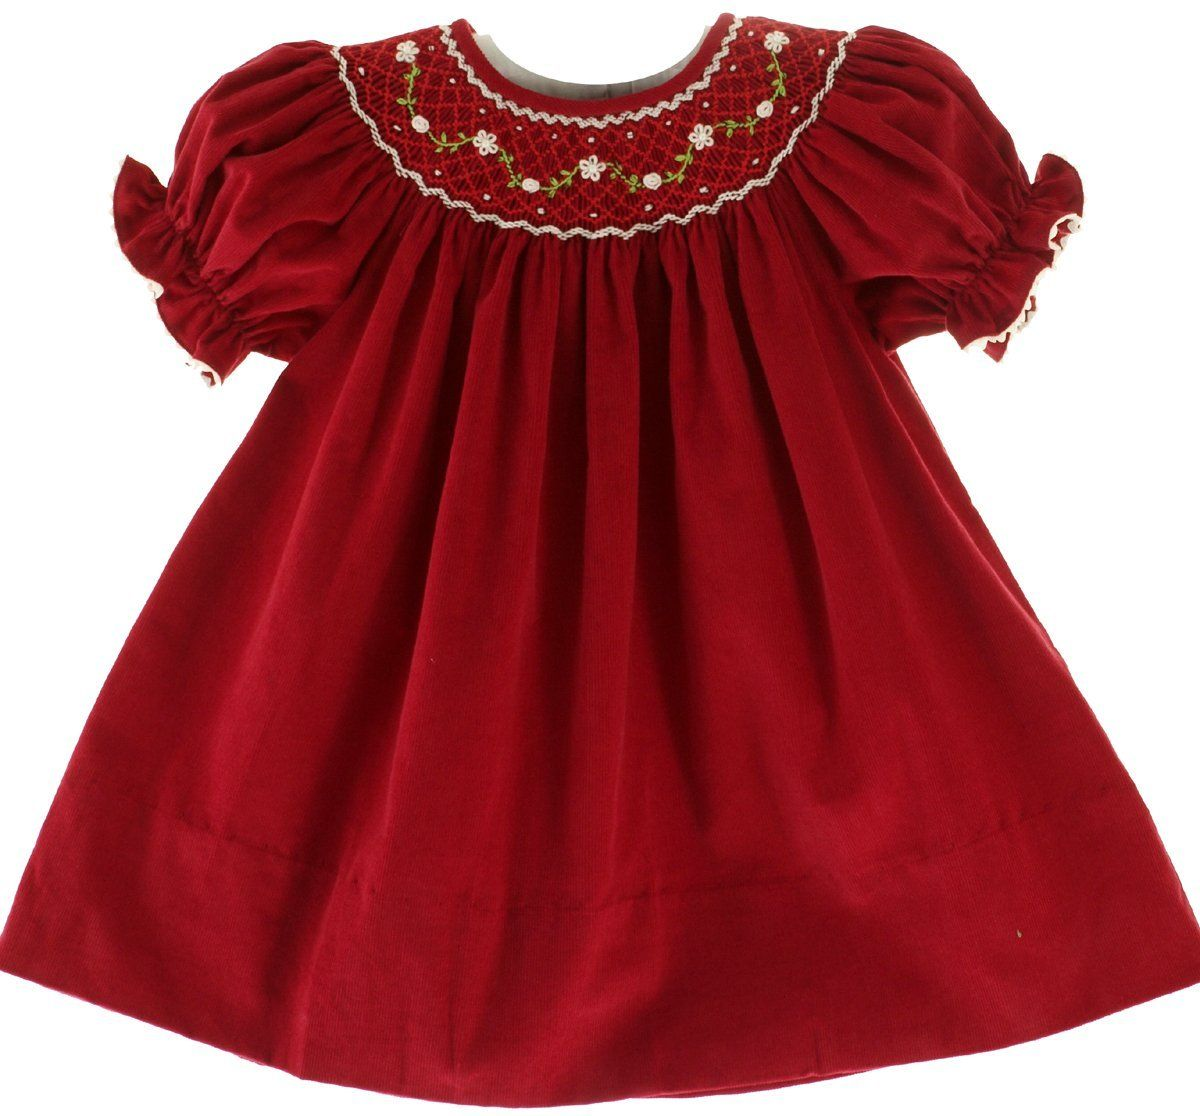 Christmas dress for baby - Images For Christmas Baby Dresses